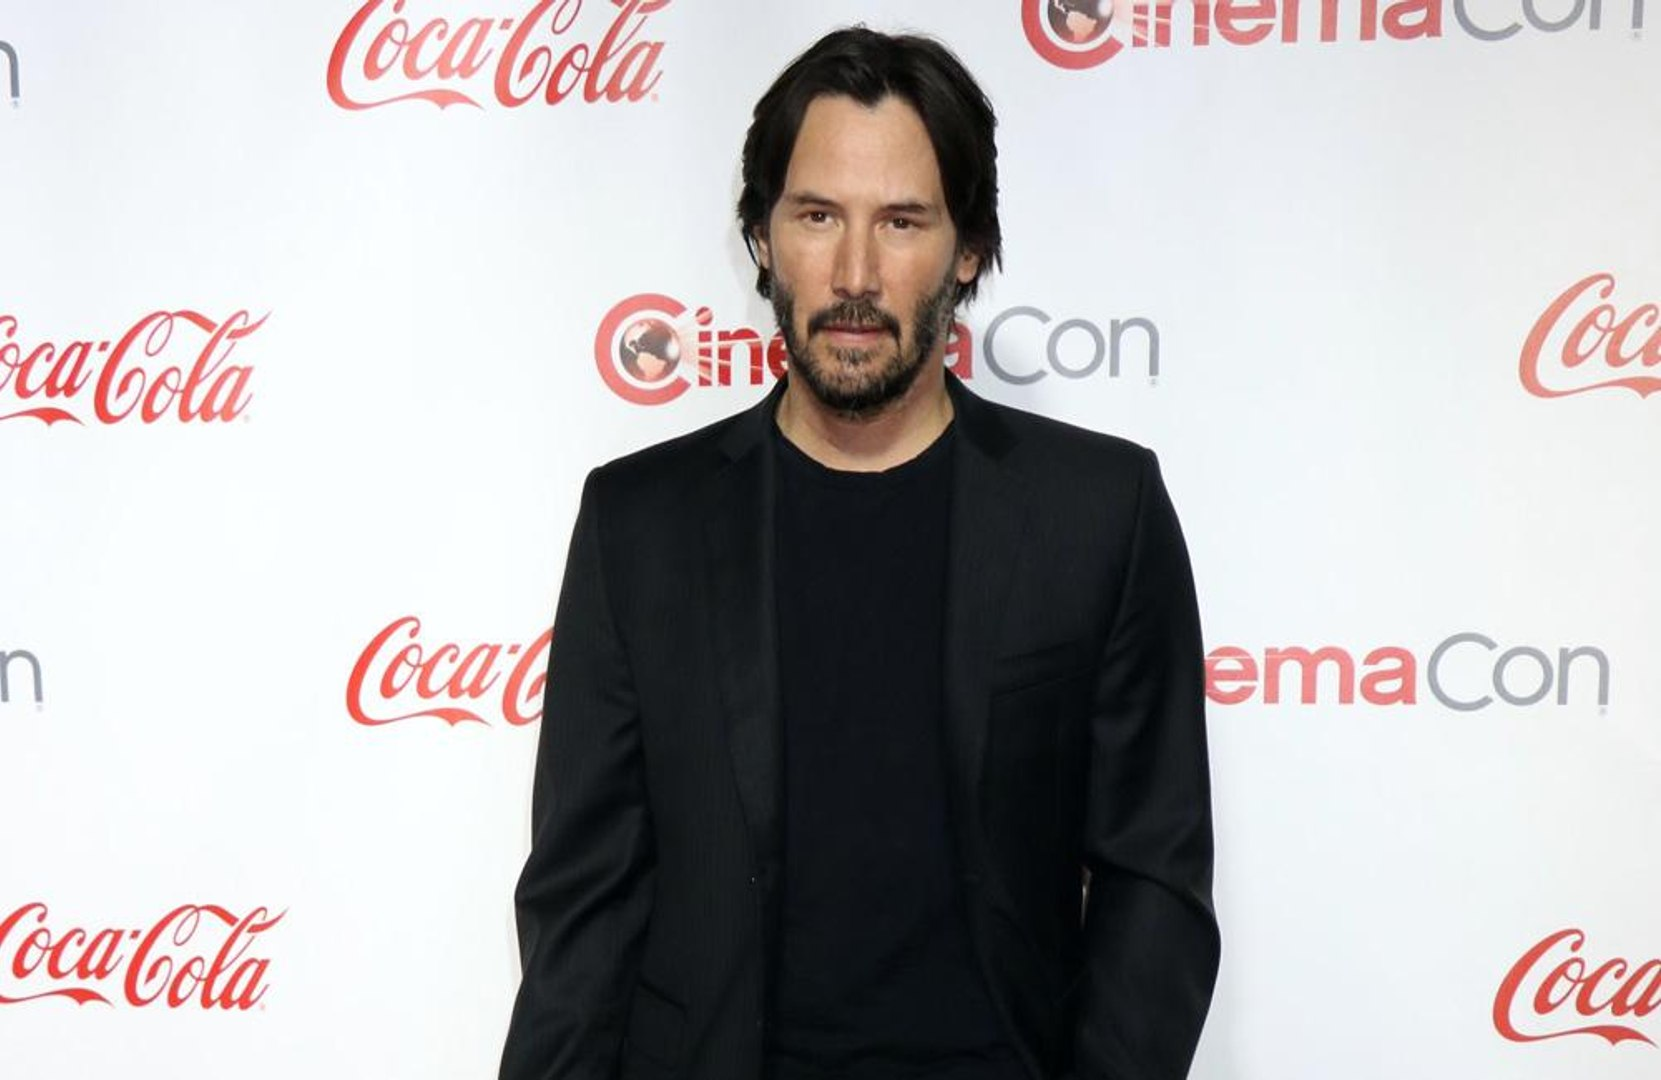 Keanu Reeves was blacklisted from Fox for 14 years